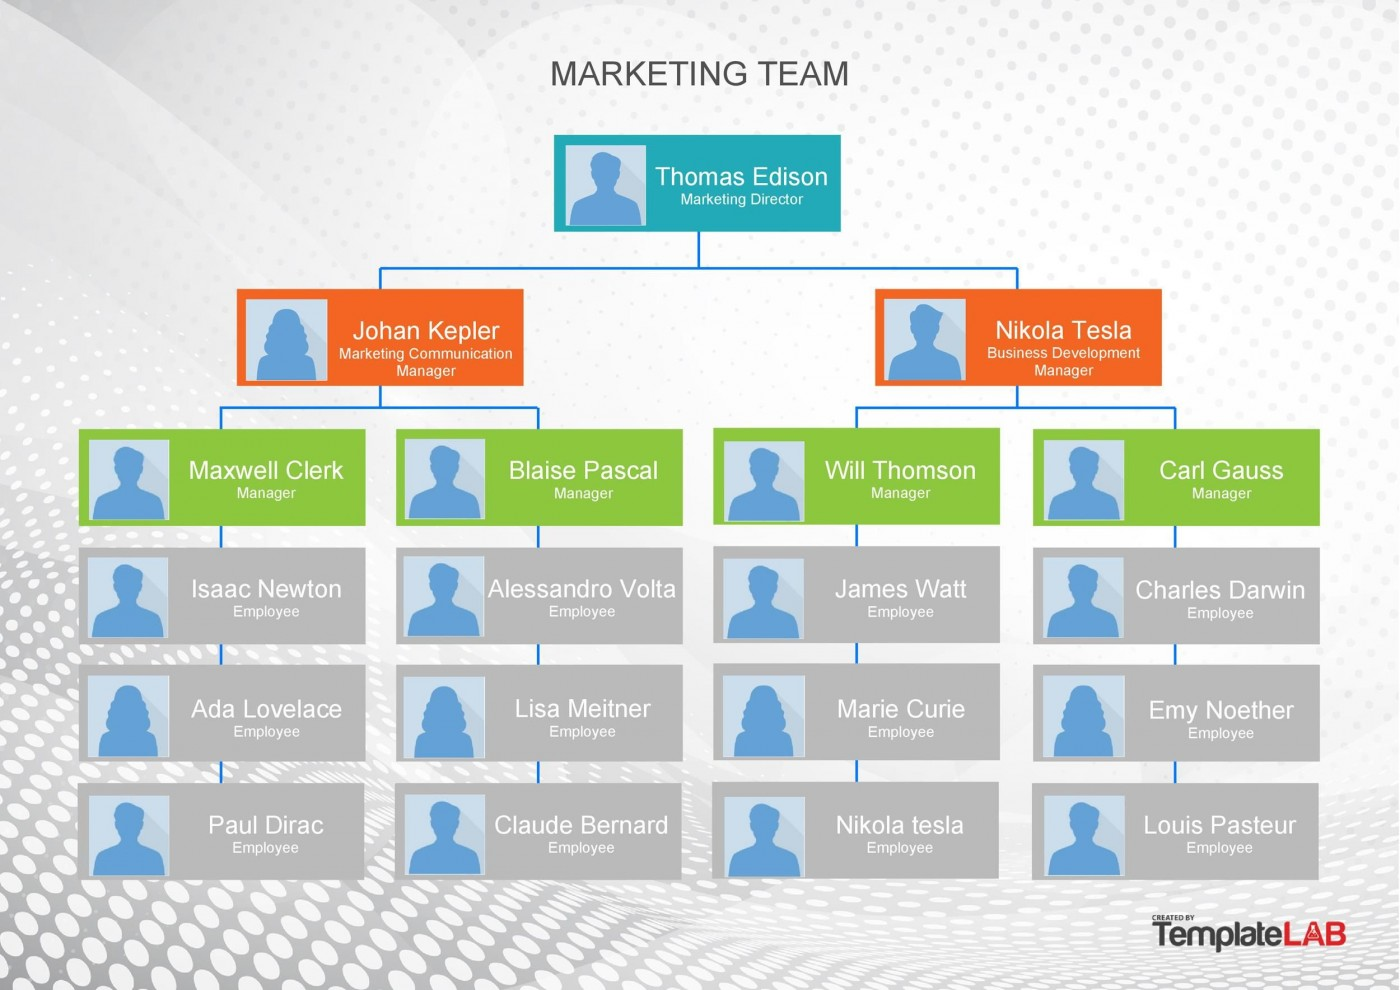 005 Dreaded Organizational Chart Template Excel High Definition  Organization Download Org1400